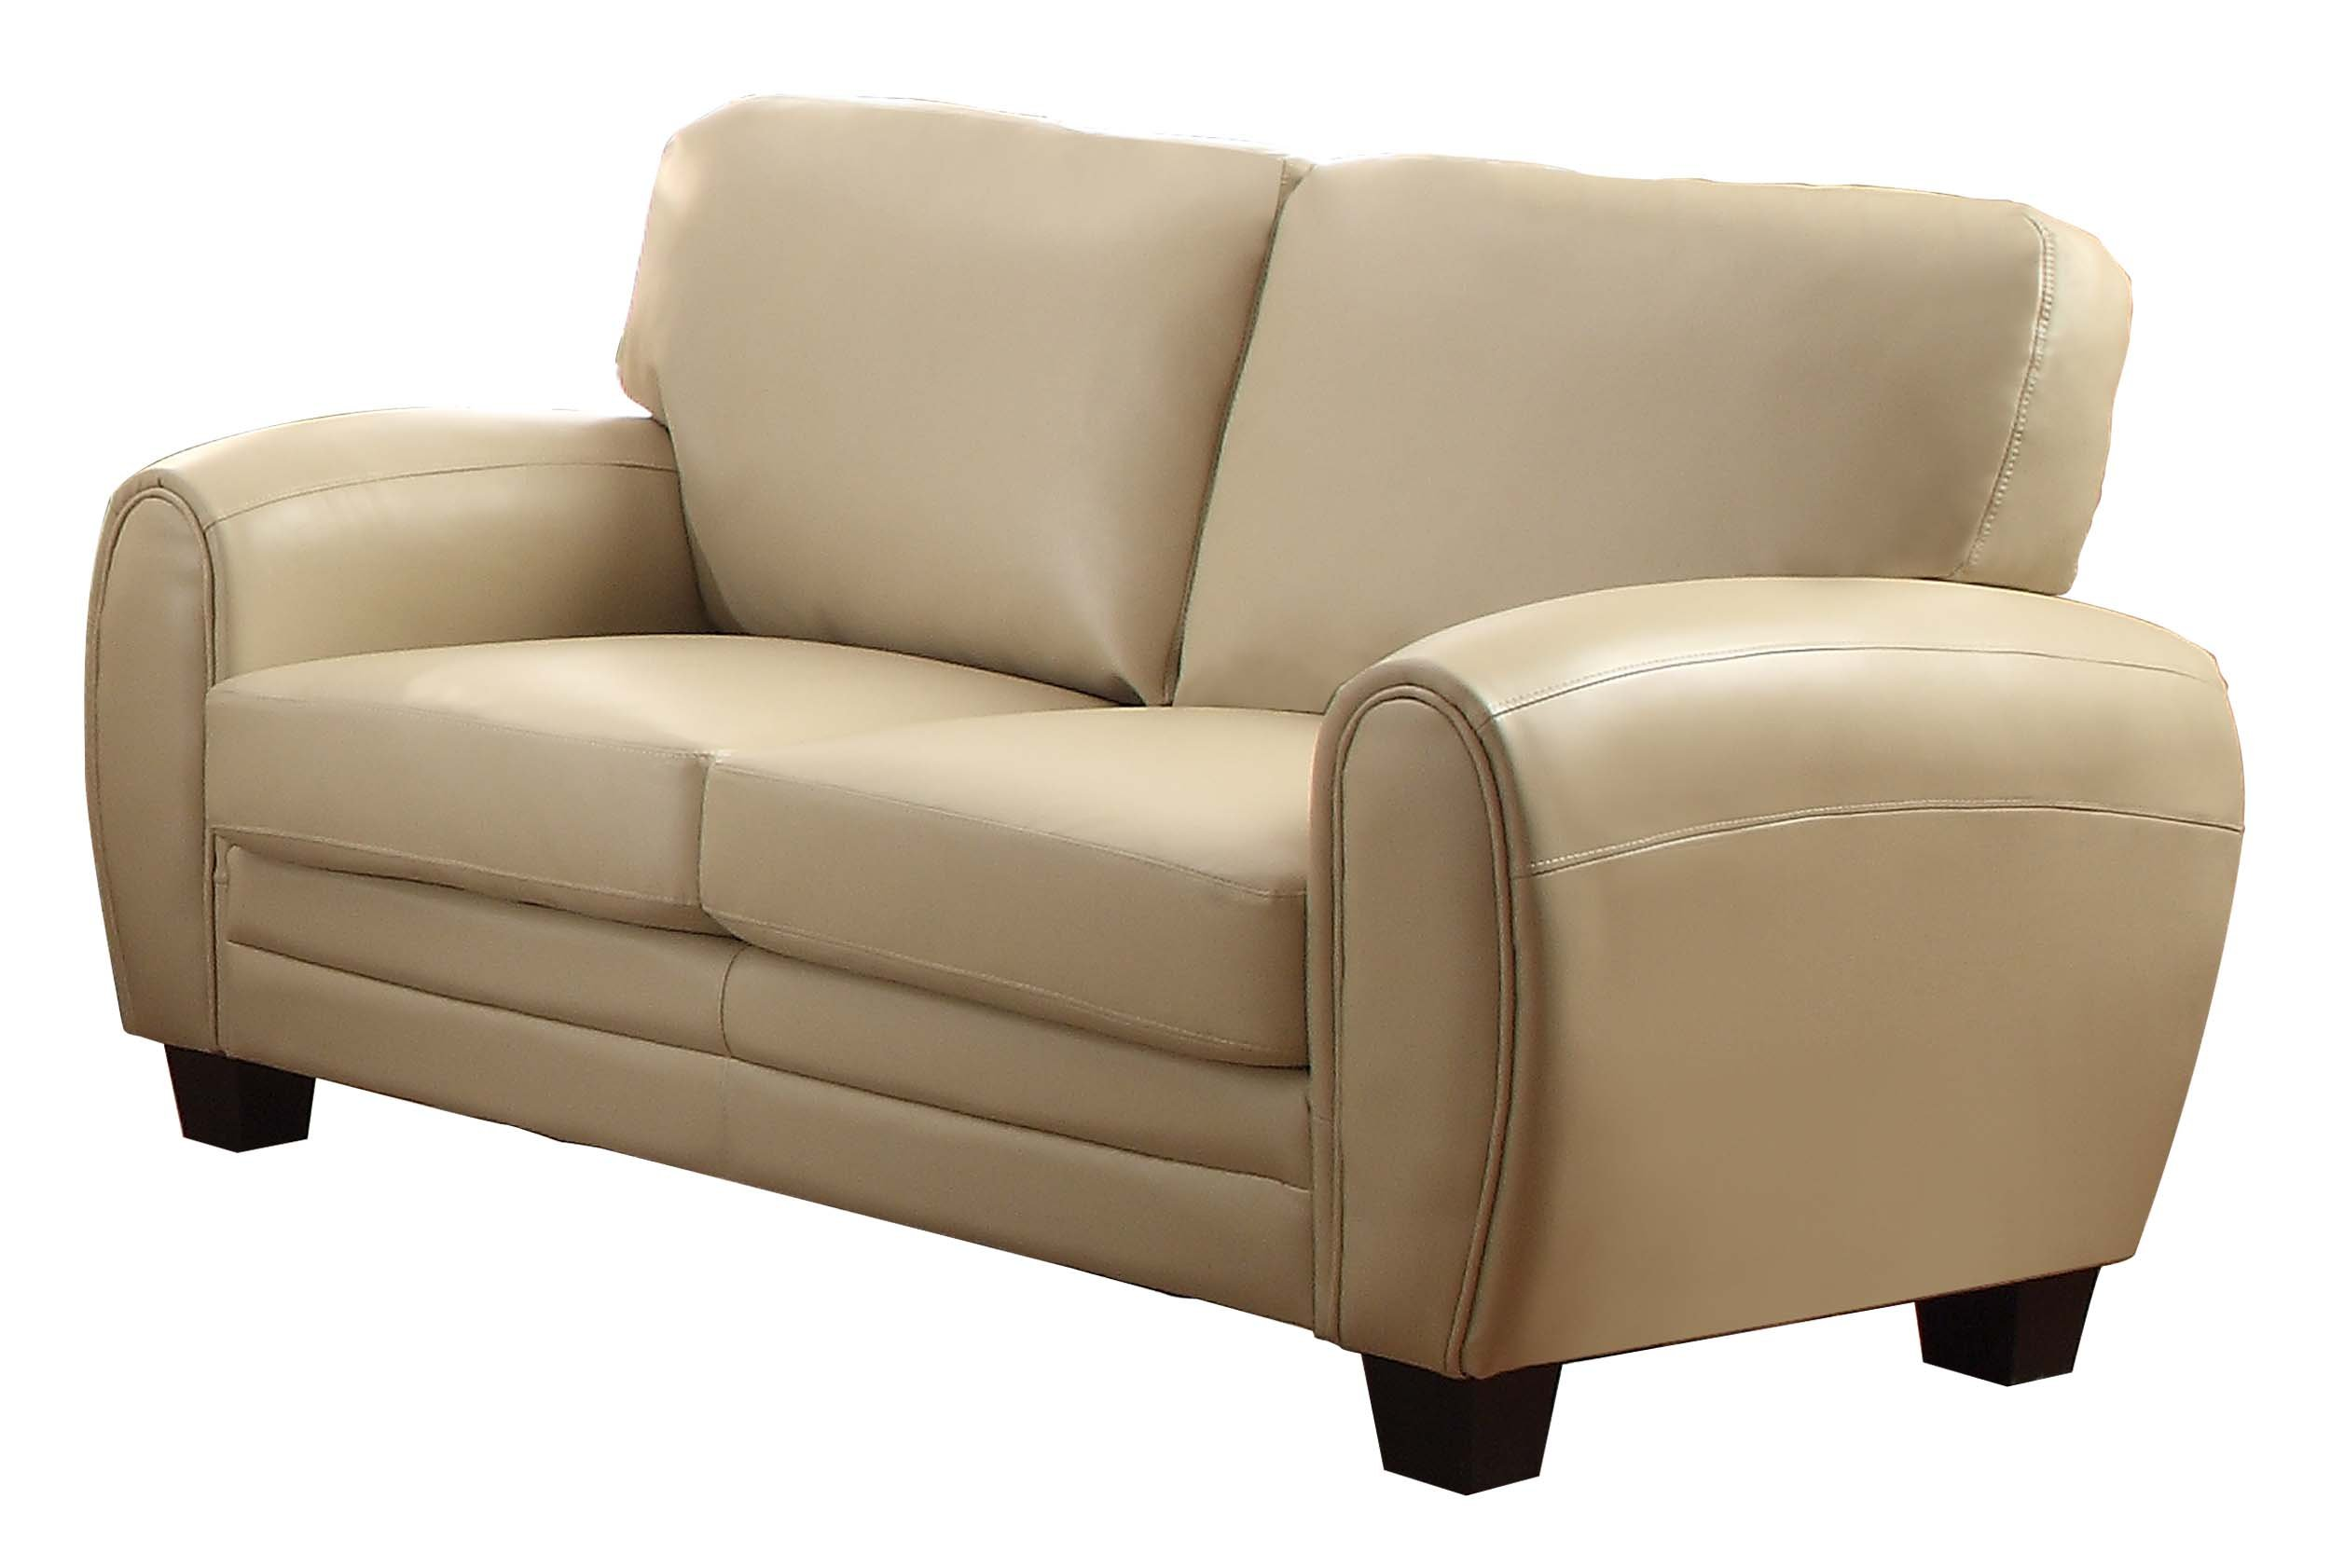 Homelegance 9734TP-2 Upholstered Loveseat, Taupe Bonded Leather Match